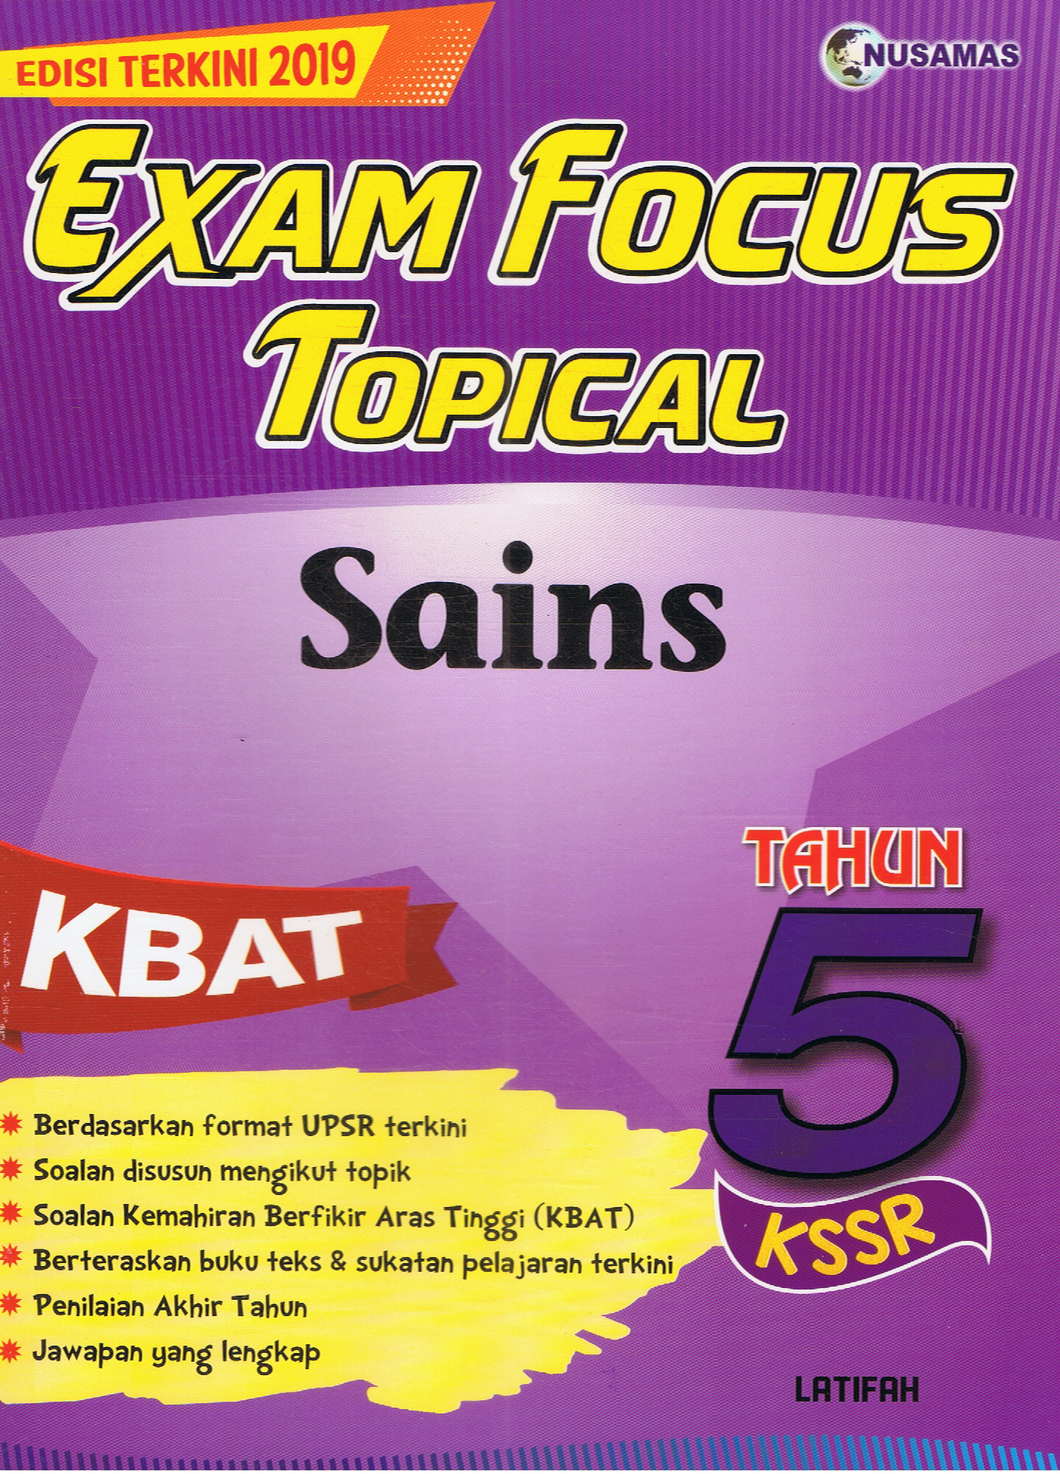 Exam Focus Topical: Sains Tahun 5